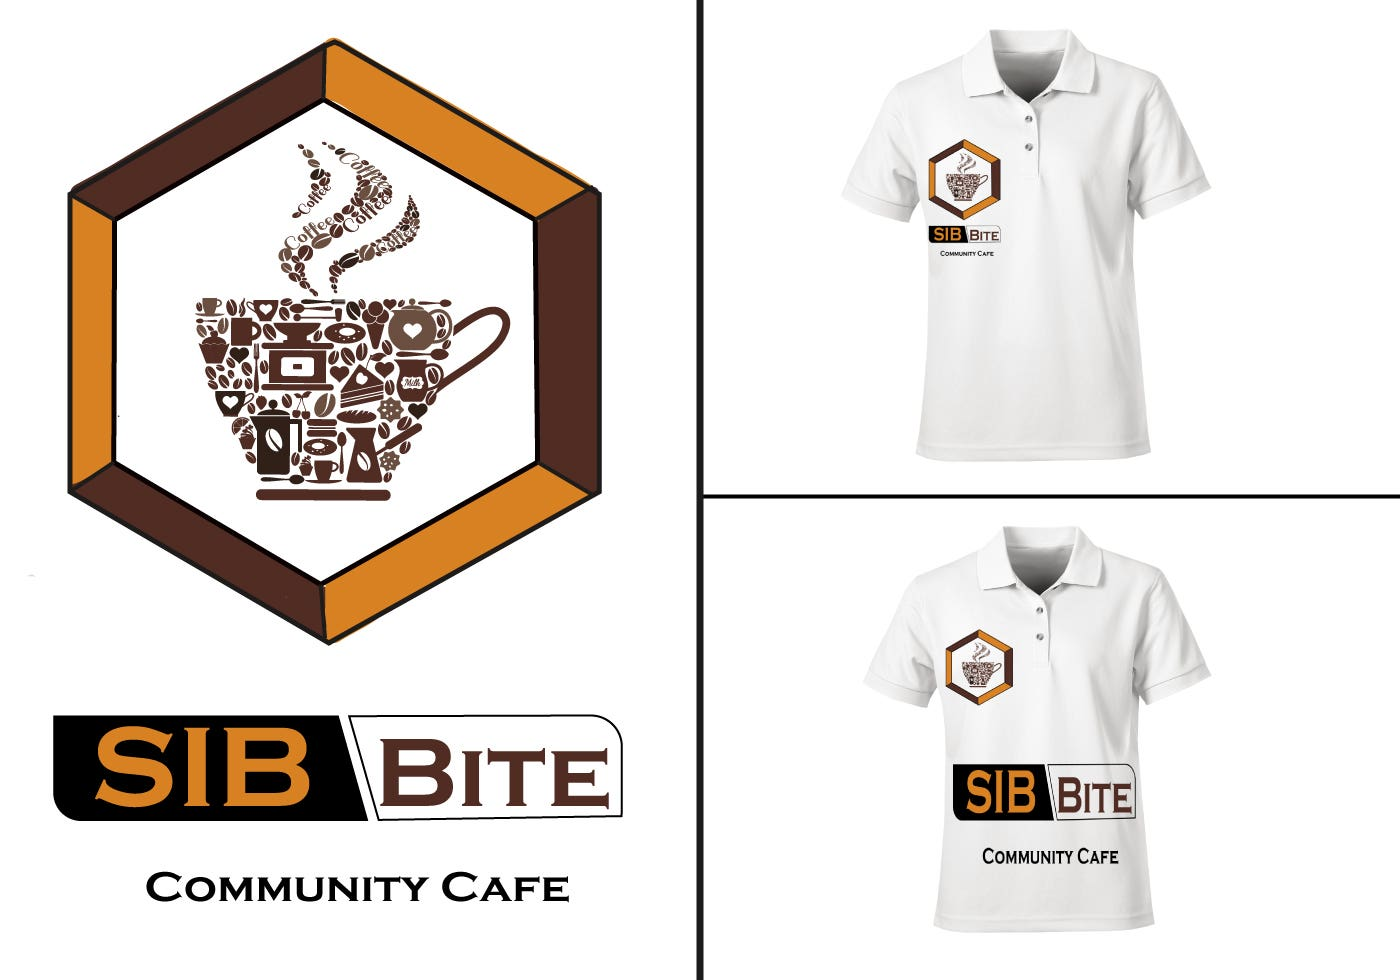 logo design and t-shrit